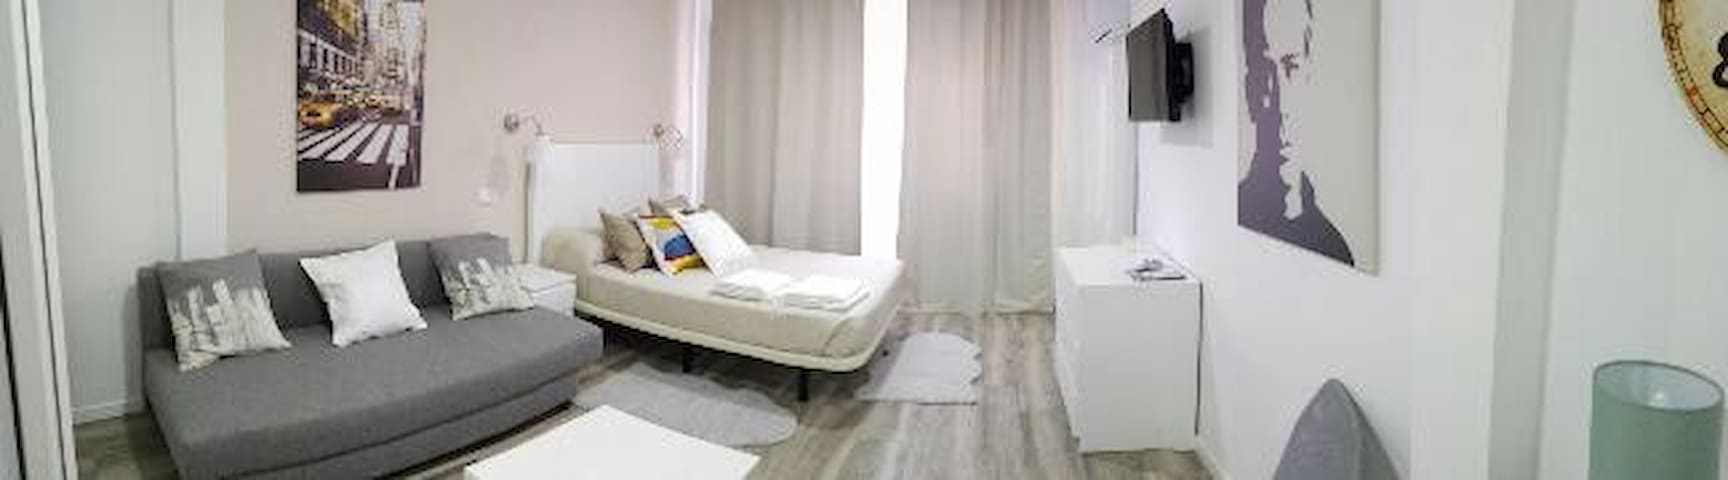 Your Own studio in Madrid 301 - Madrid - Appartement